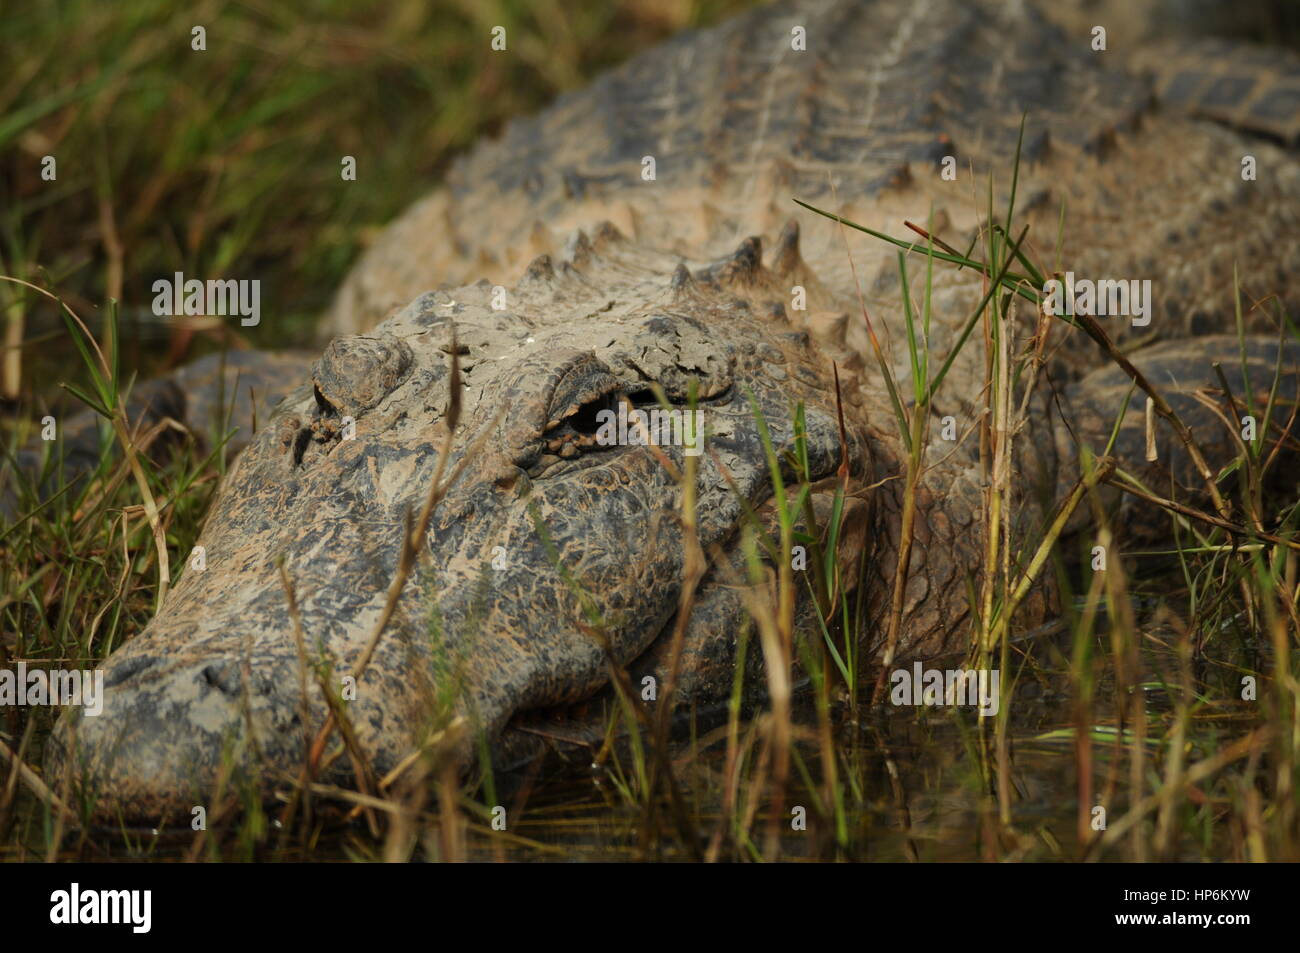 An American Alligator resting on the side of a bank at sea rim state par. Stock Photo